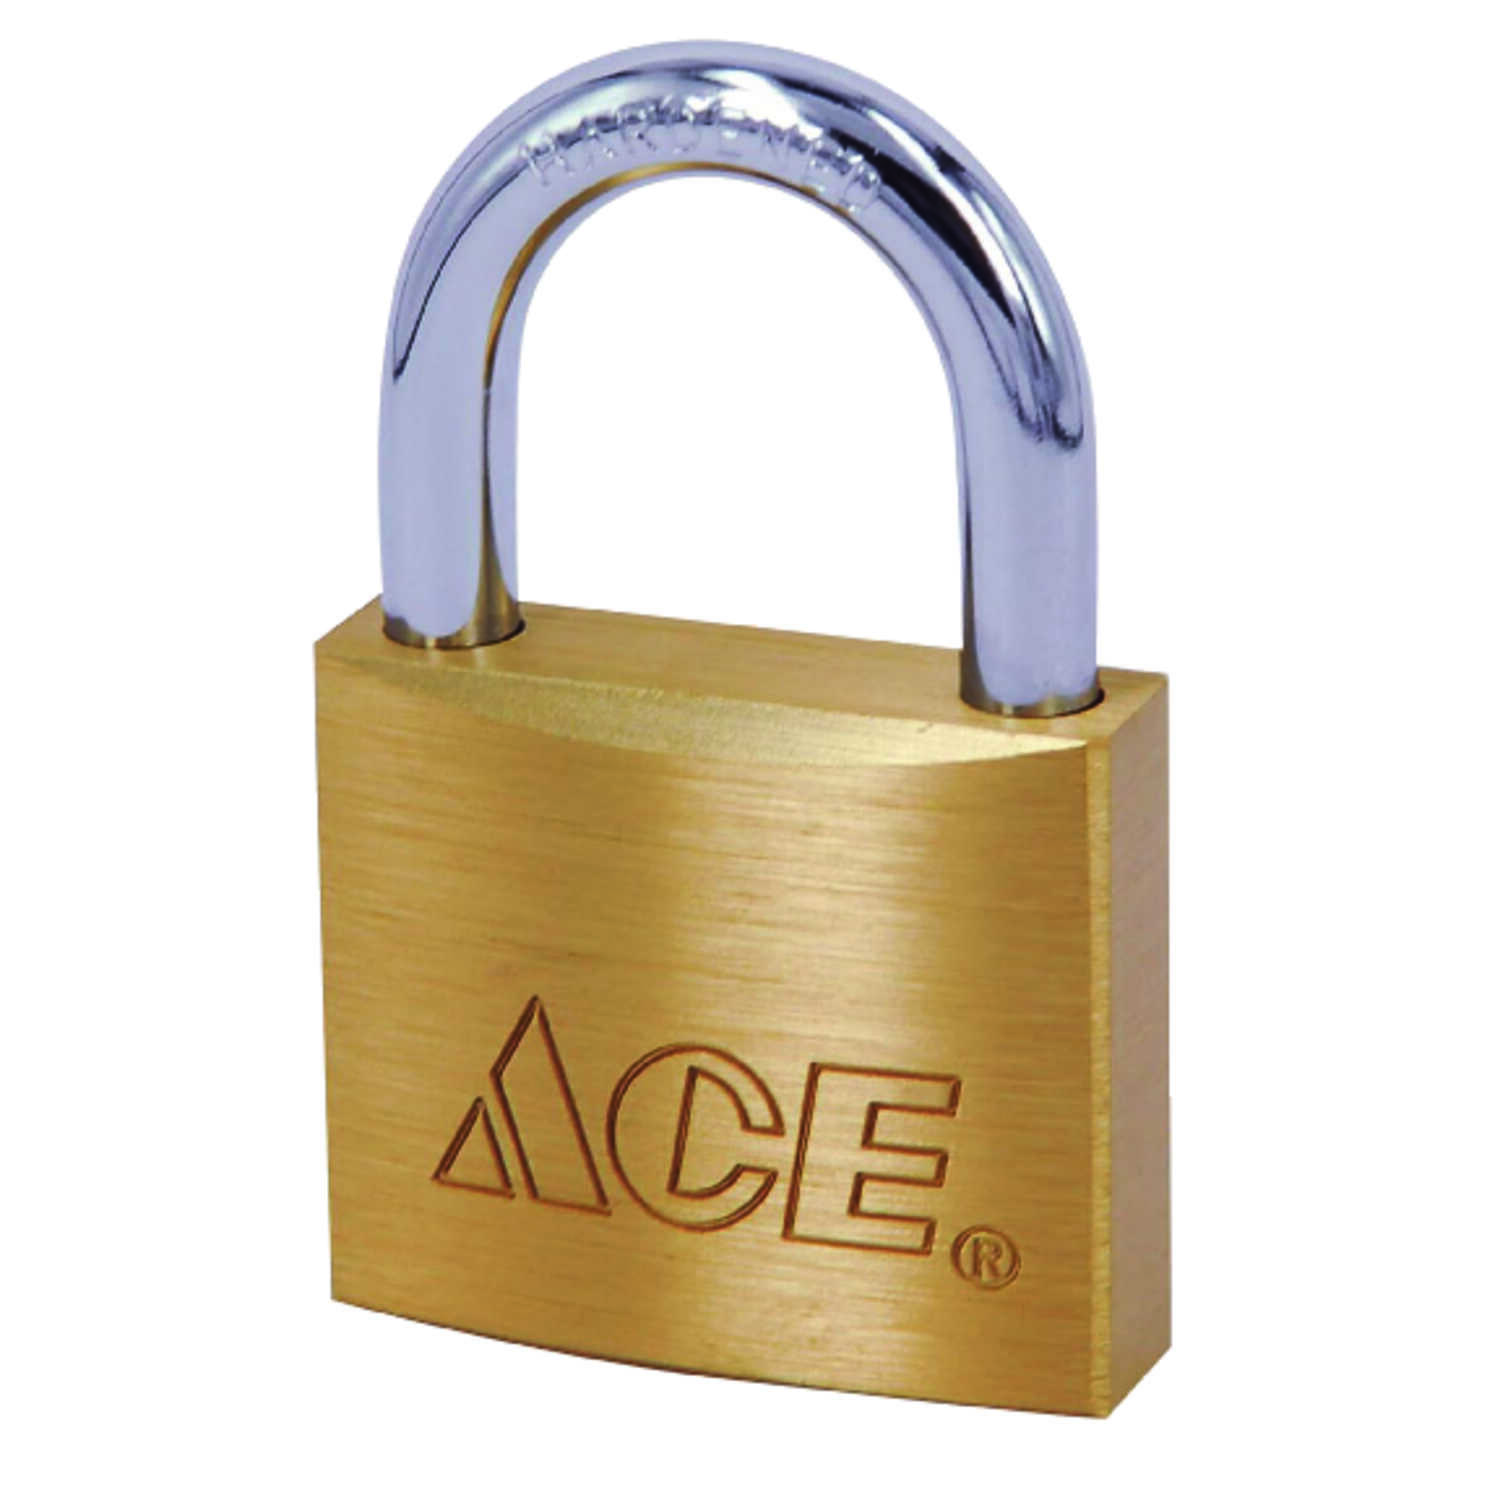 Ace  1-5/16 in. H x 1-1/2 in. W x 9/16 in. L Brass  Double Locking  Padlock  1 pk